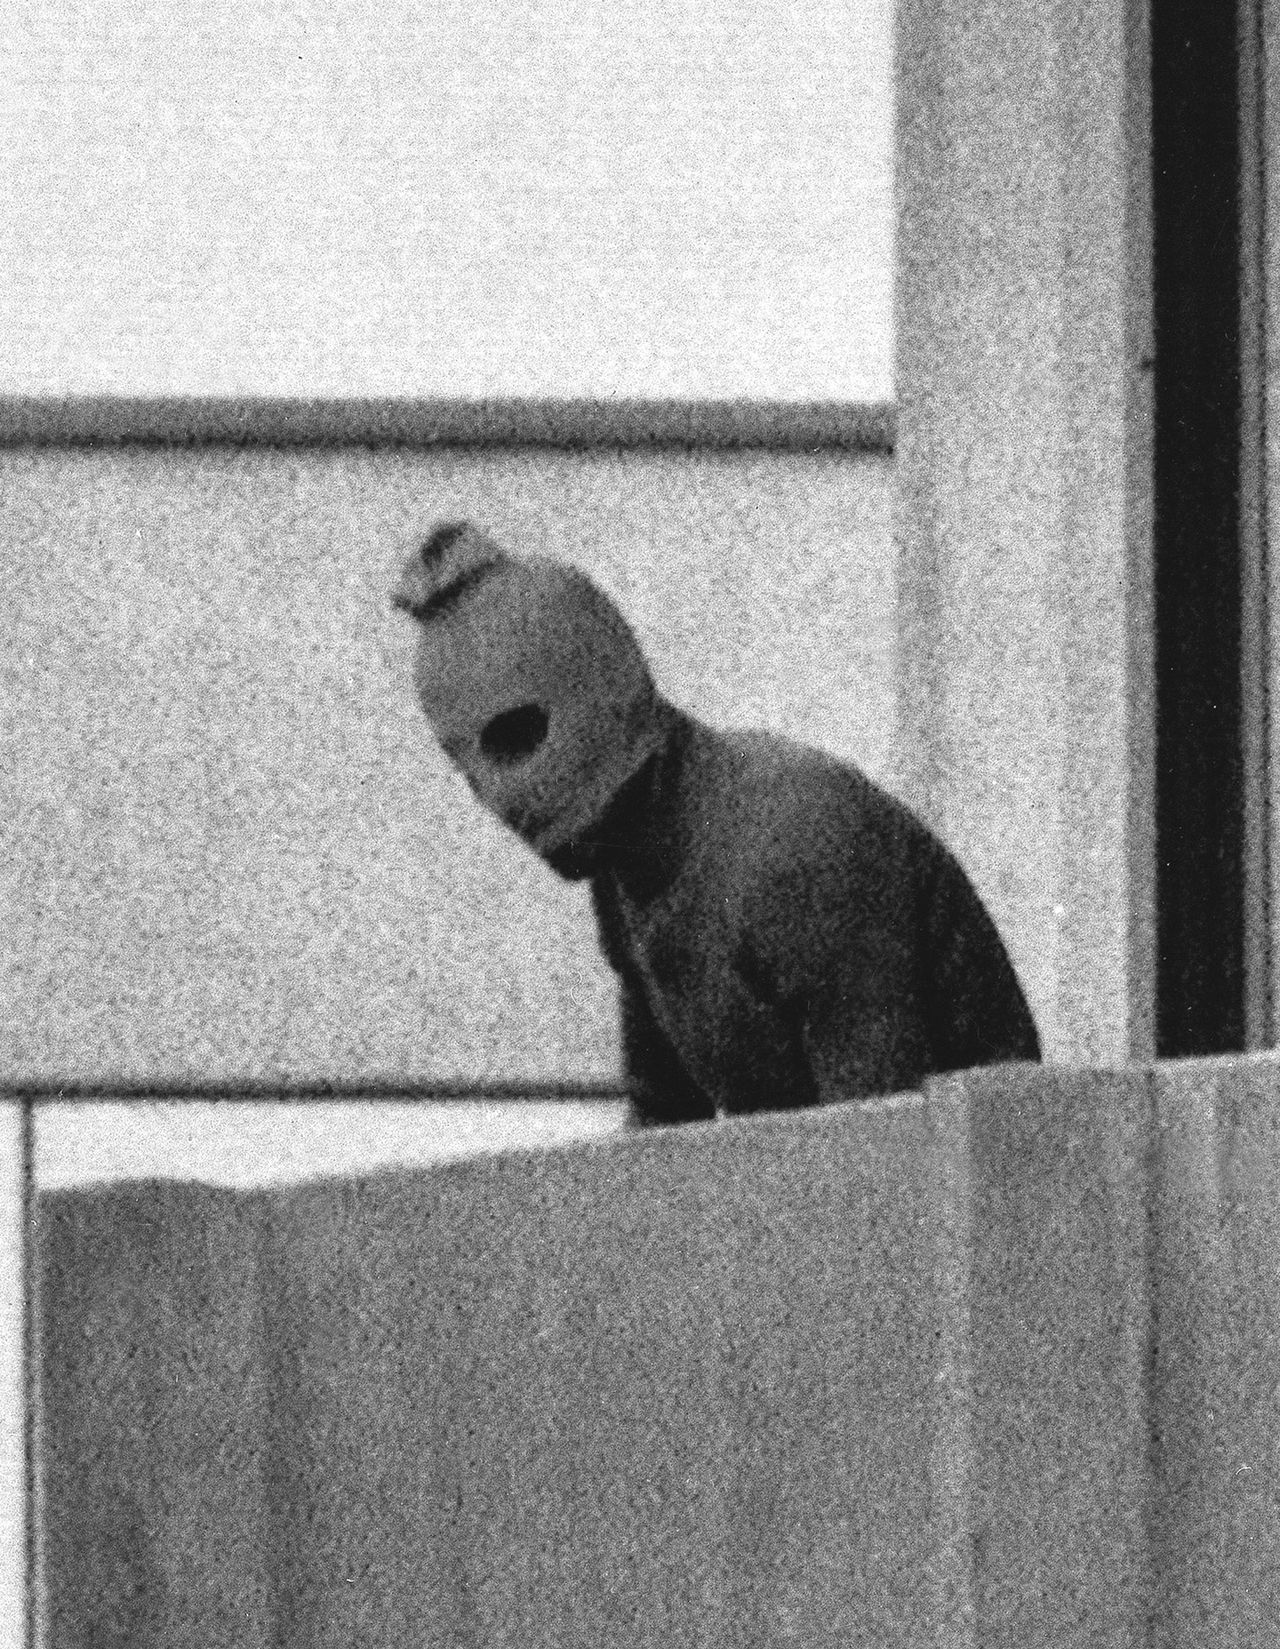 """Een van de Palestijnse terroristen in het Olympisch Dorp in München, 1972 Foto AP ** FILE ** A member of the Palestinian terrorist group which seized members of the Israeli Olympic team at their quarters at the Munich Olympic Village appears with a hood over his face on the balcony of the village building where the commandos held their hostage in this Sept. 5, 1972 file photo. The tragic events of the 1972 Summer Games are recalled in """"Munich,"""" Steven Spielberg's new film about Israeli hit squads avenging the team members' deaths. (AP Photo/Kurt Strumpf)"""